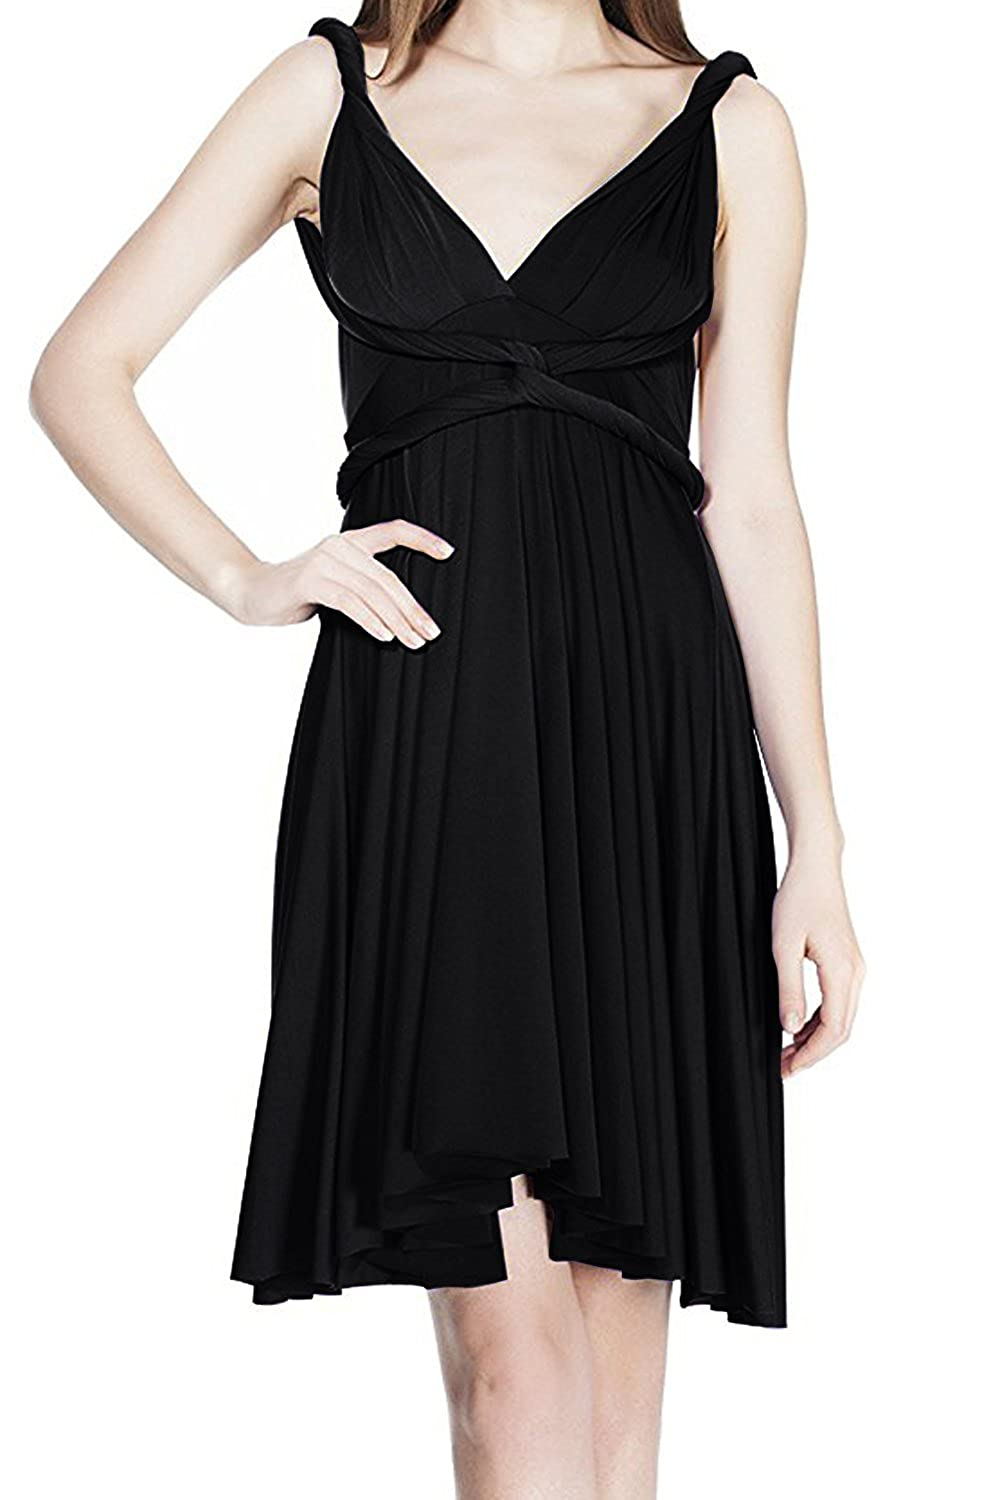 386bb7effc5 Women s Infinity Transformer Evening Dress Convertible Multi Way Wrap  Cocktail Wedding Short Gown at Amazon Women s Clothing store